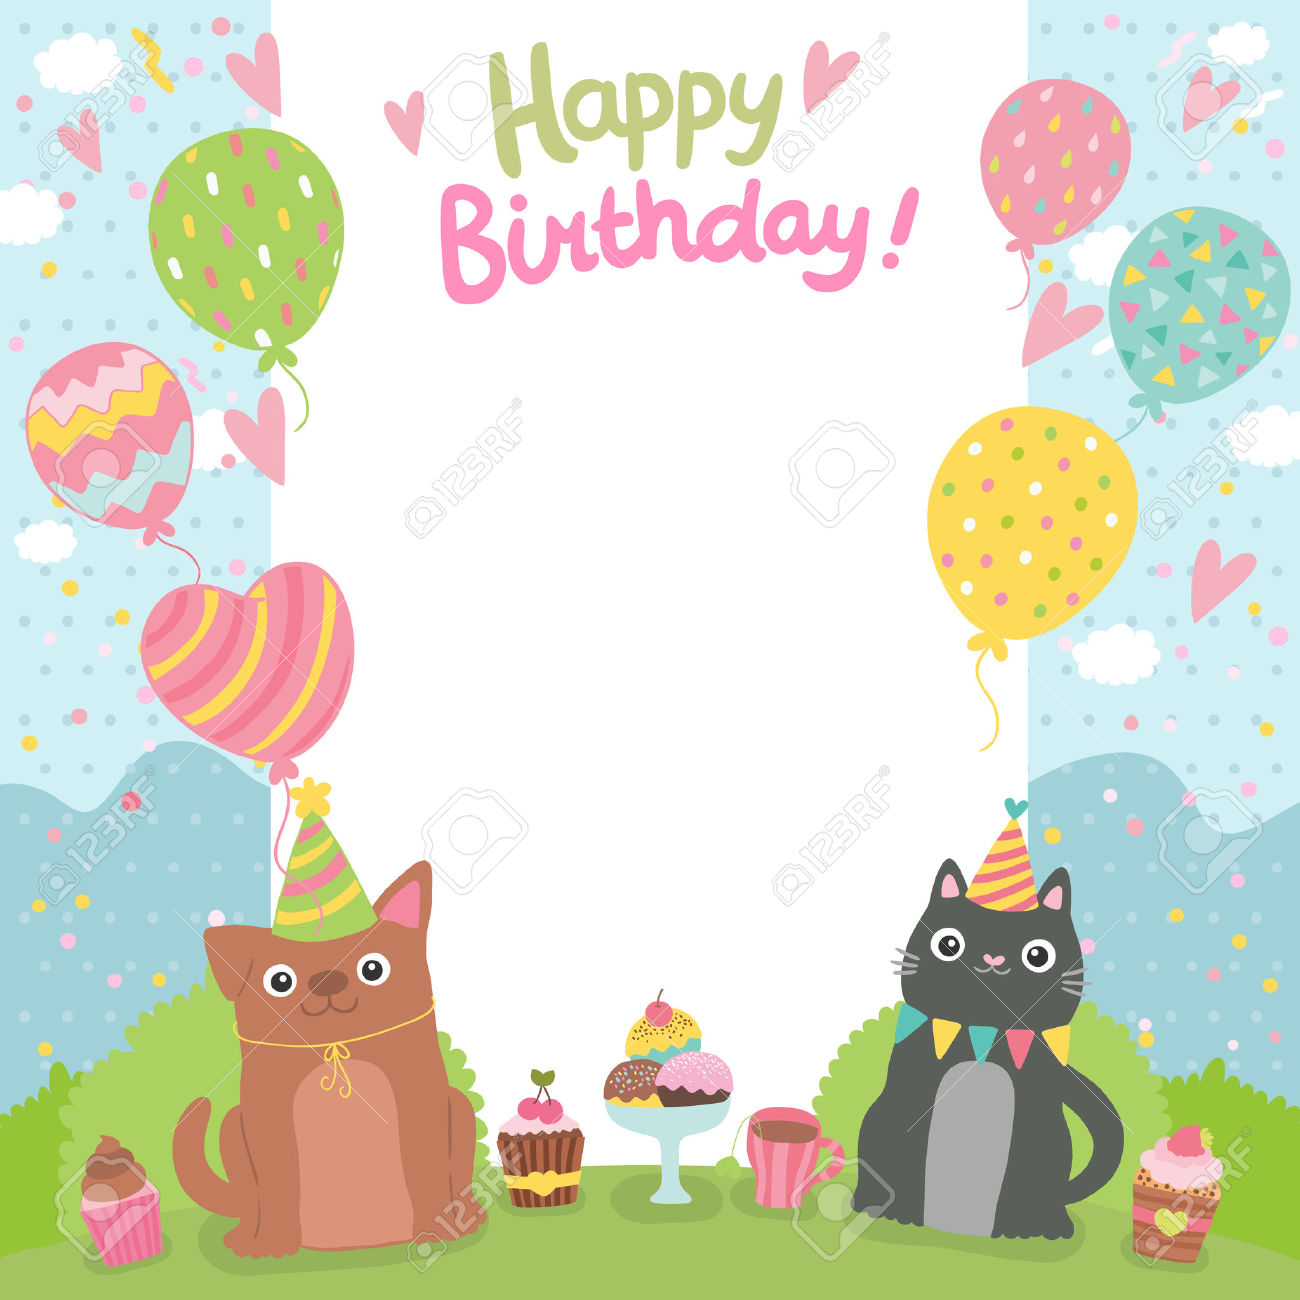 bday card designs ; template-for-birthday-card-also-colorful-and-classic-themed-and-2-cats-completing-simple-and-elegant-stunning-adding-by-beautiful-design-looked-so-unique